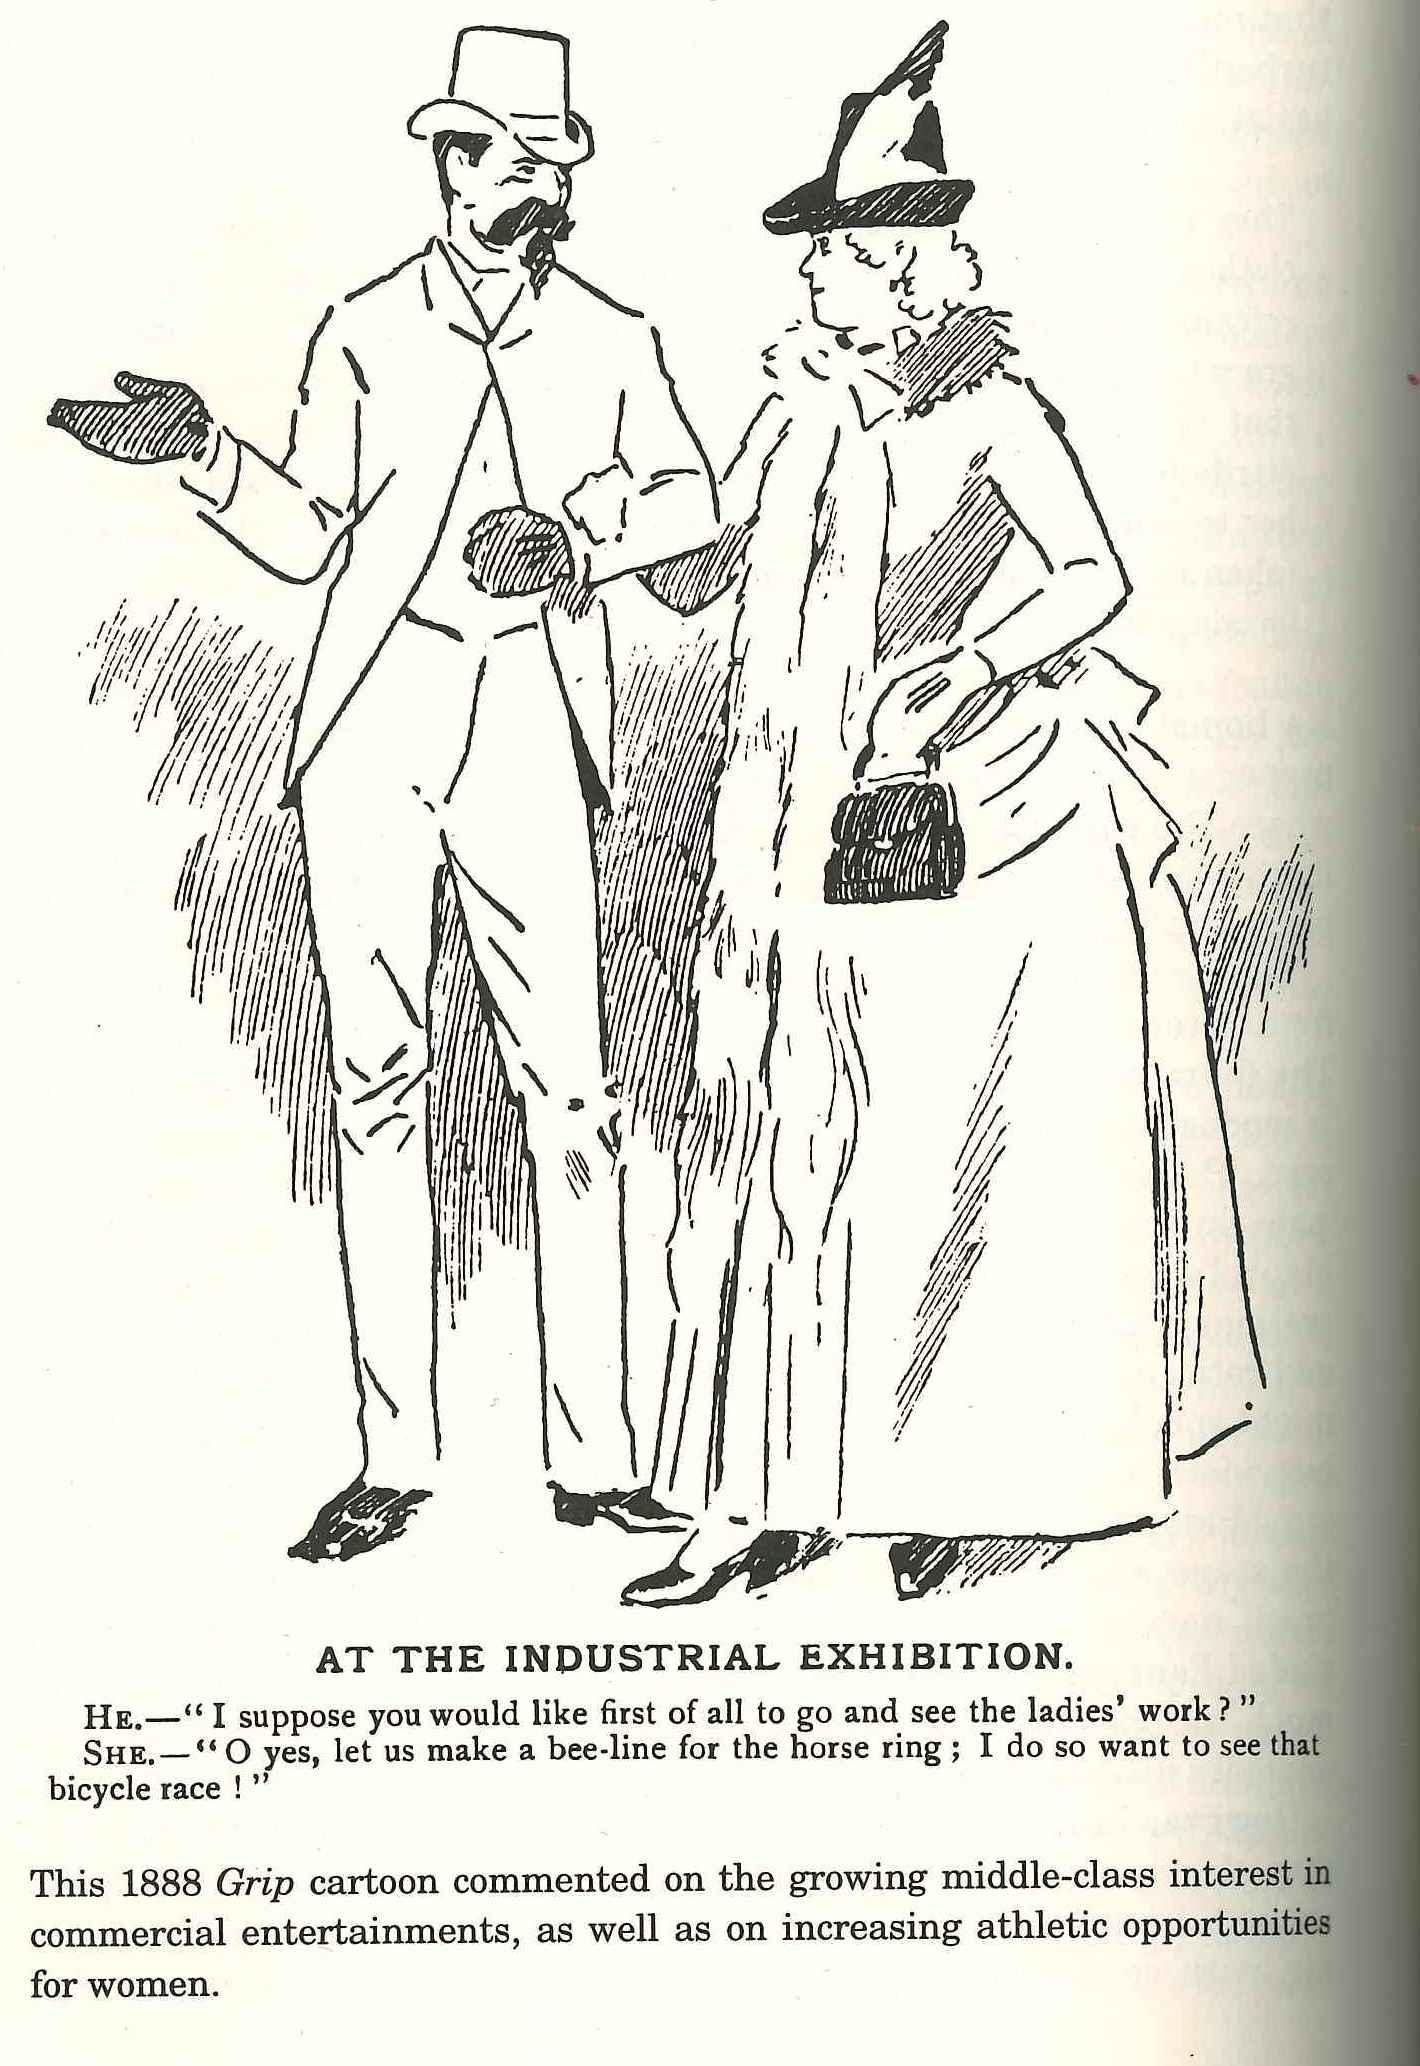 1888 Grip Cartoon